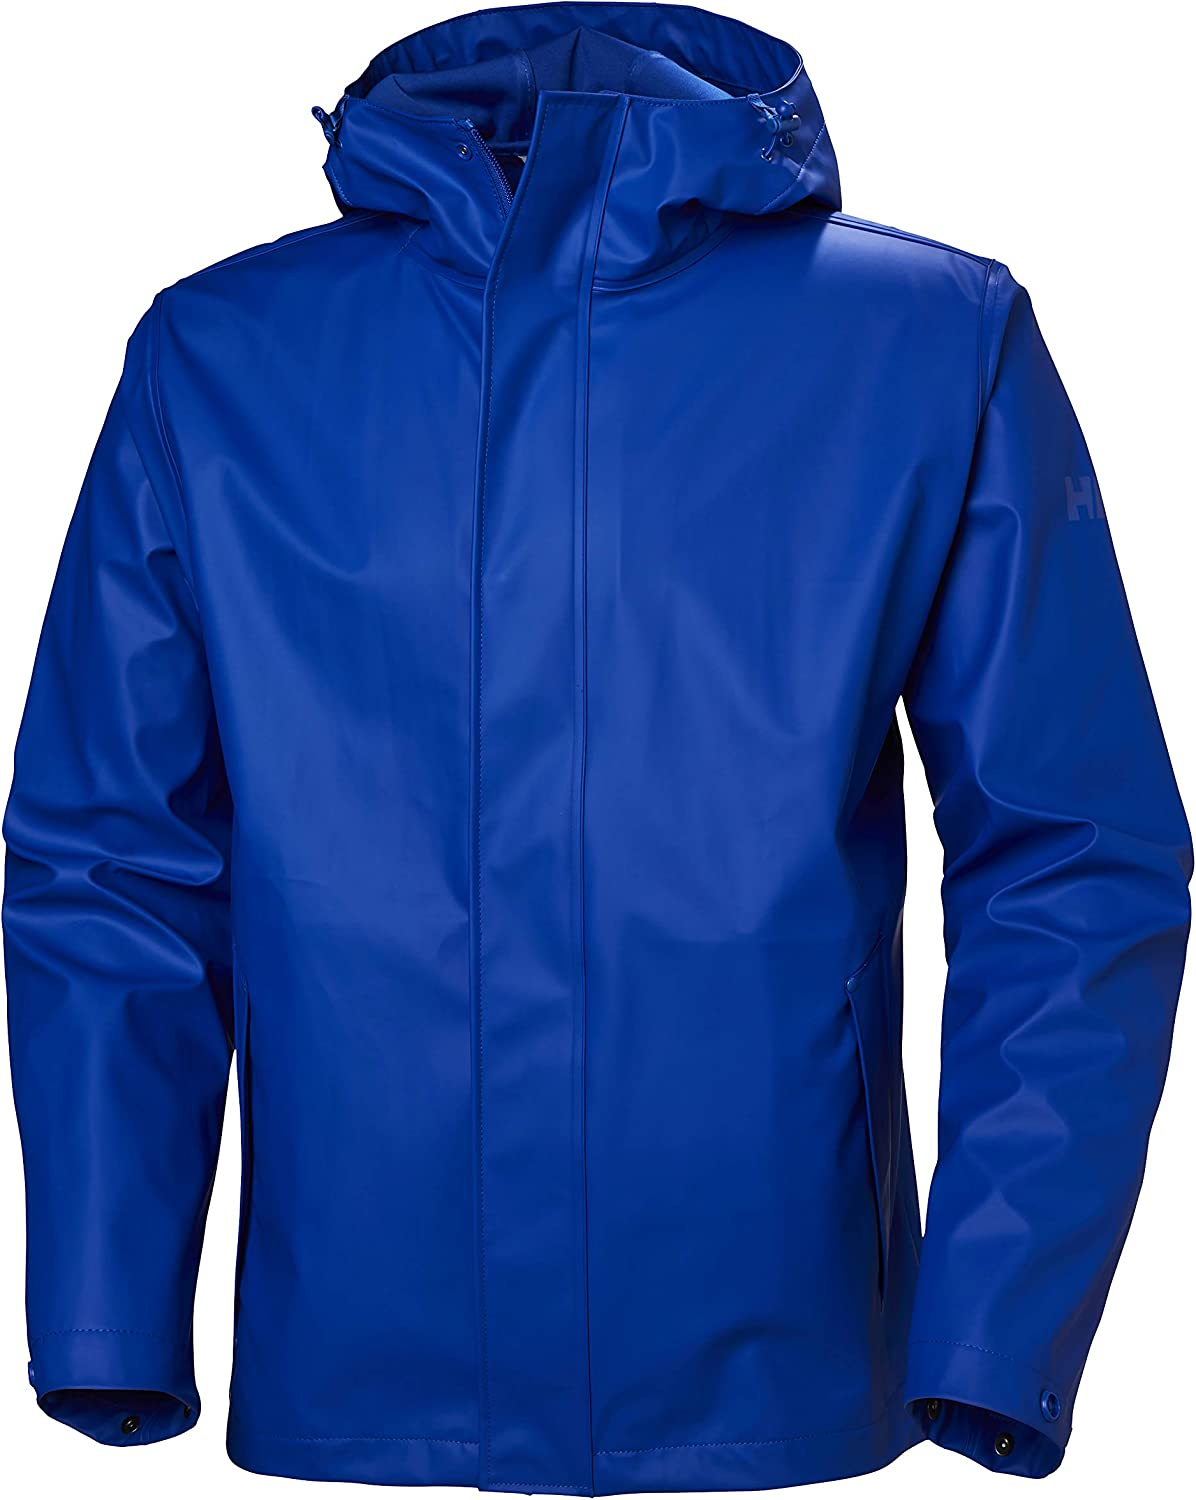 Helly-Hansen mens Moss Hooded Fully Waterproof Windproof Raincoat Jacket